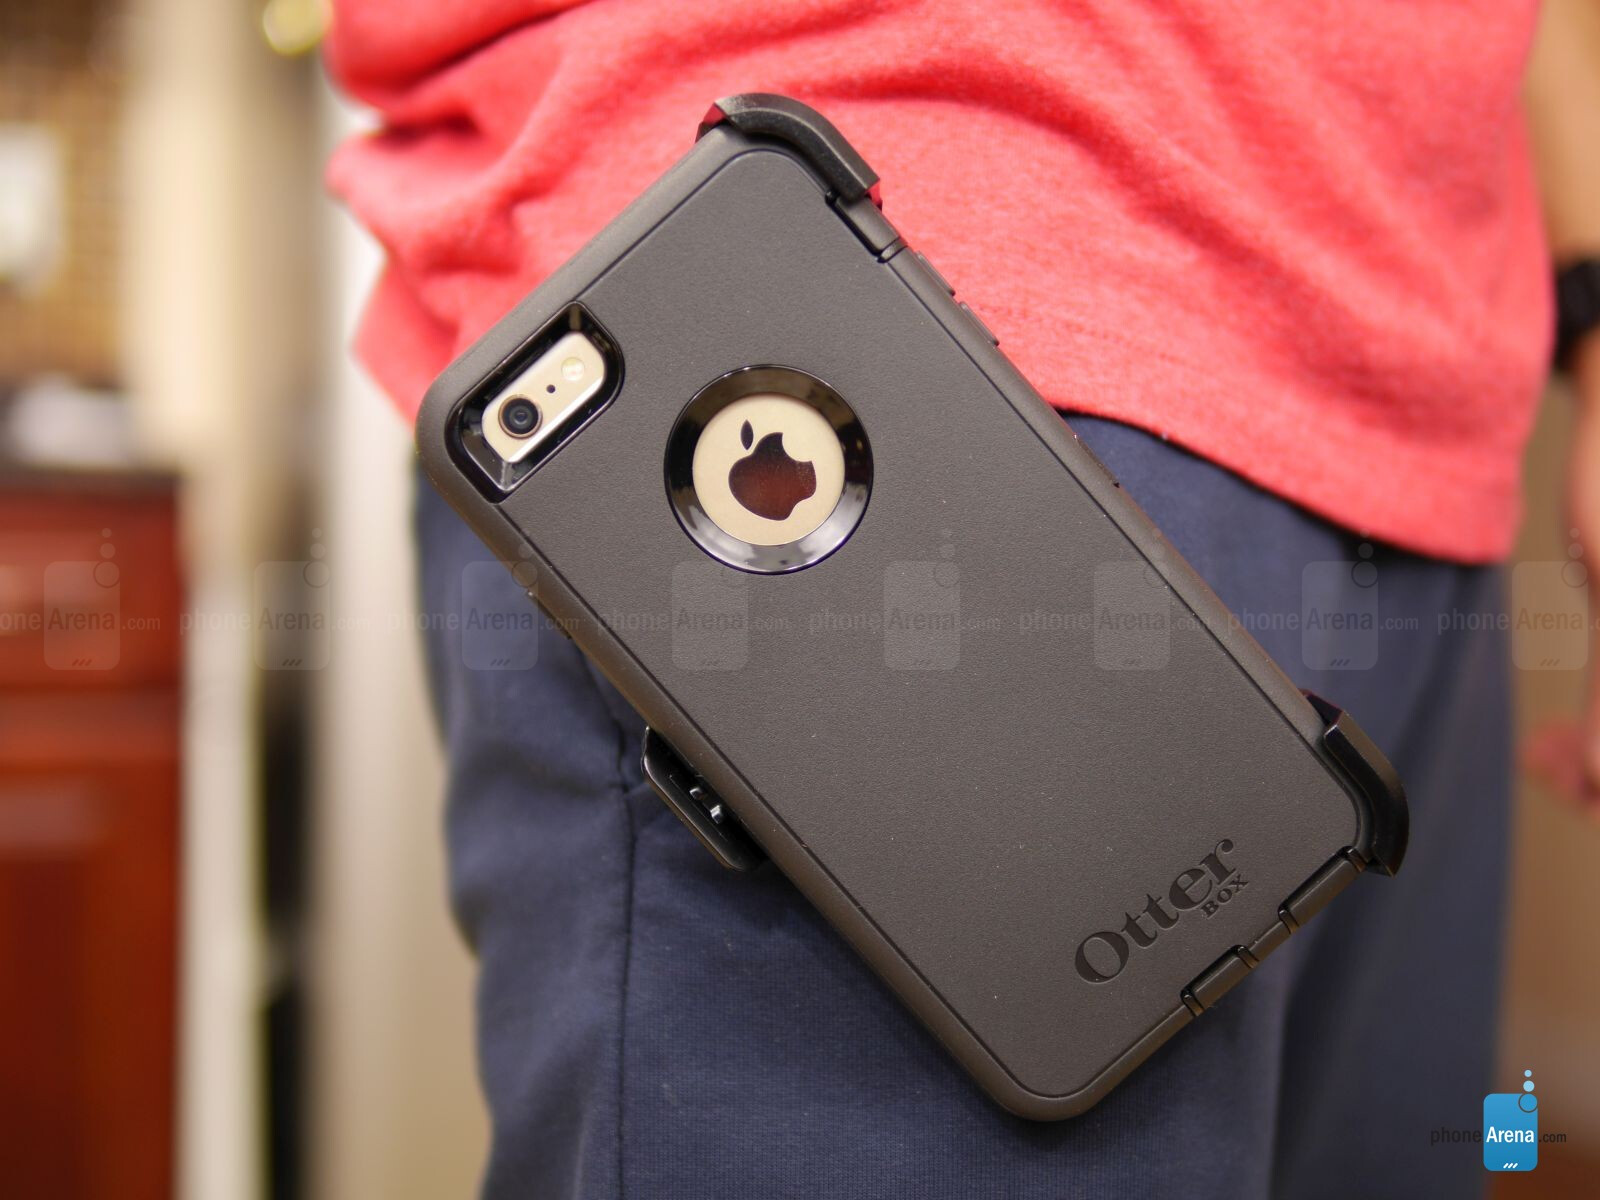 eeb21158f Otterbox Defender Series Case for Apple iPhone 6 Plus Review ...